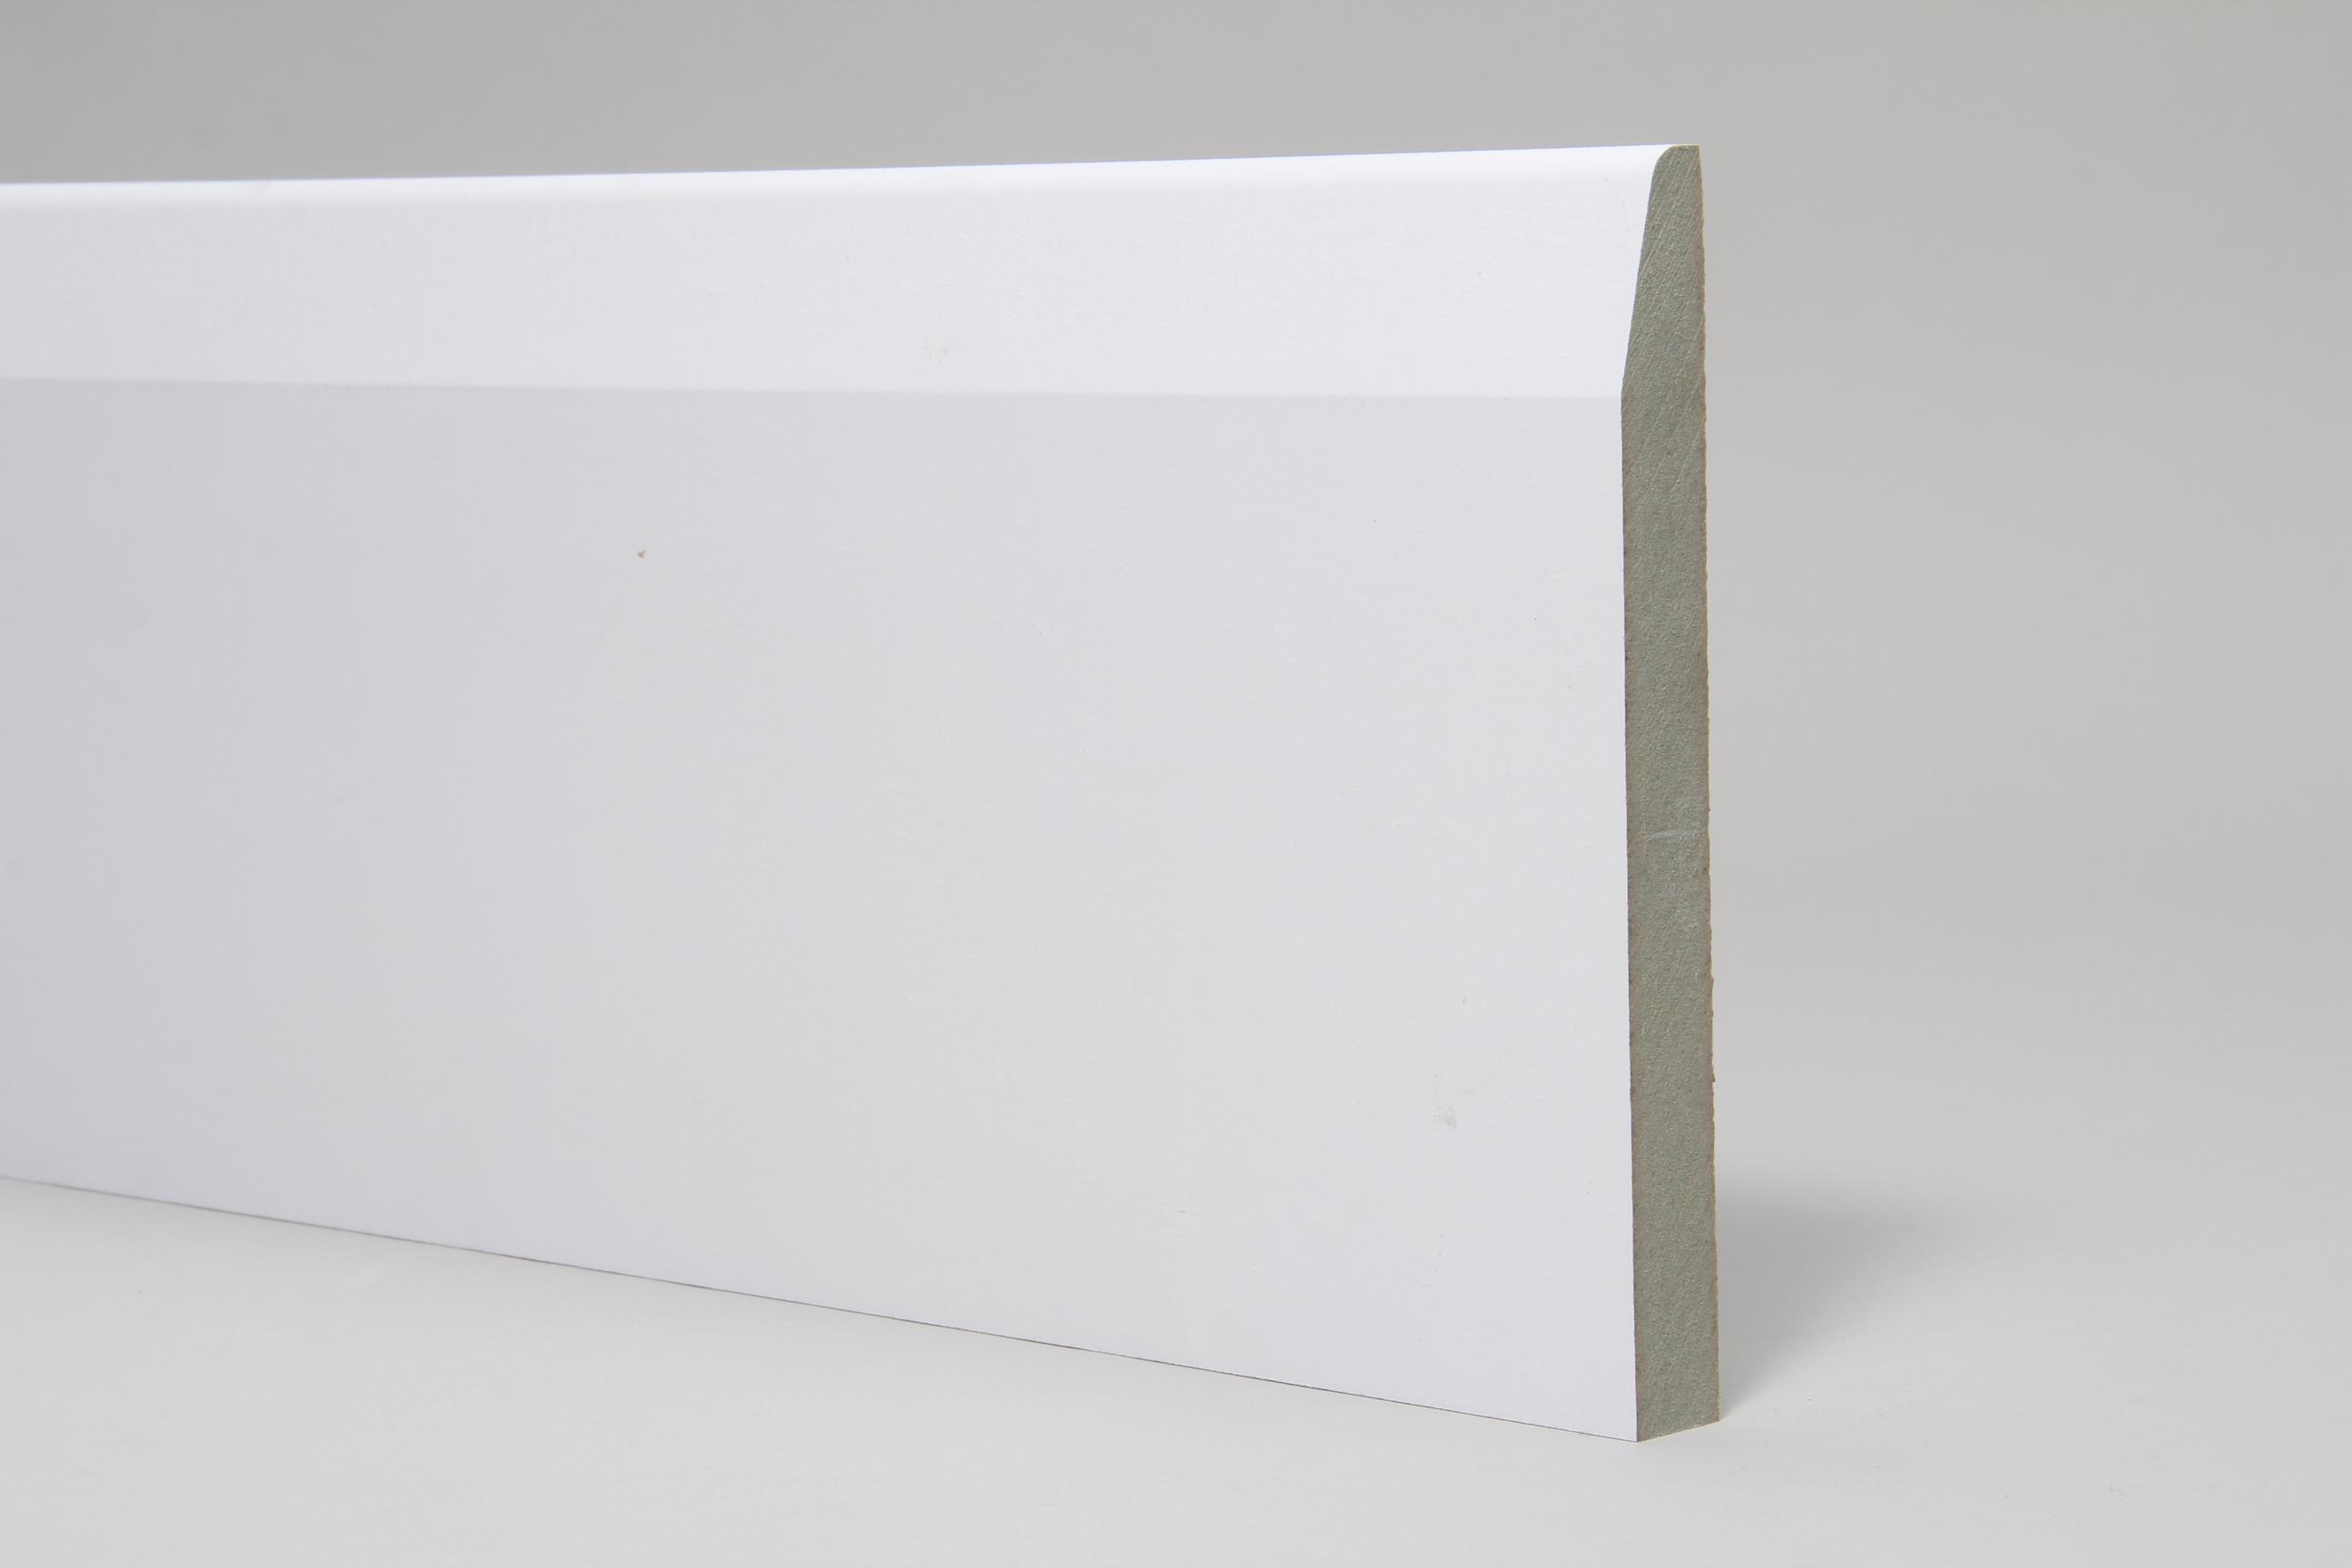 Chamfered & Rounded 18mm x 168mm x 4.4 Mtr Primed